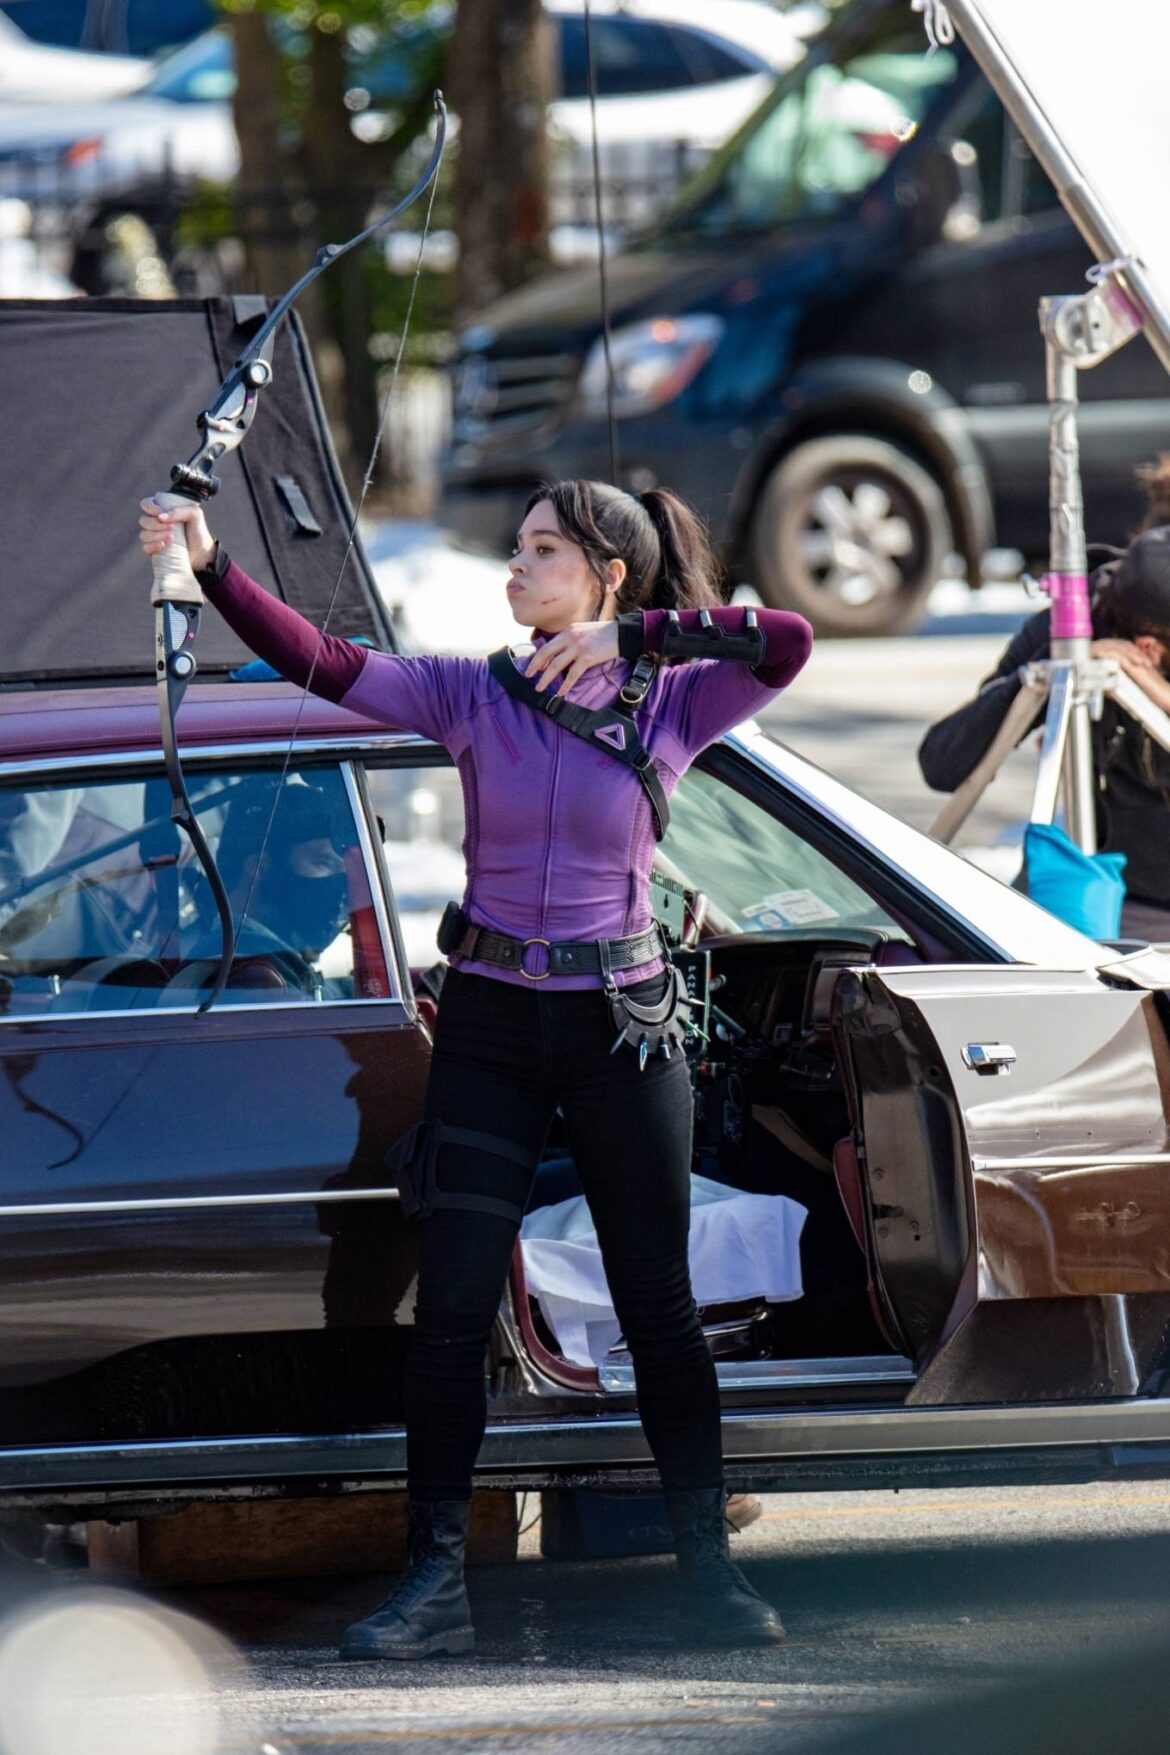 Hawkeye Set Photos